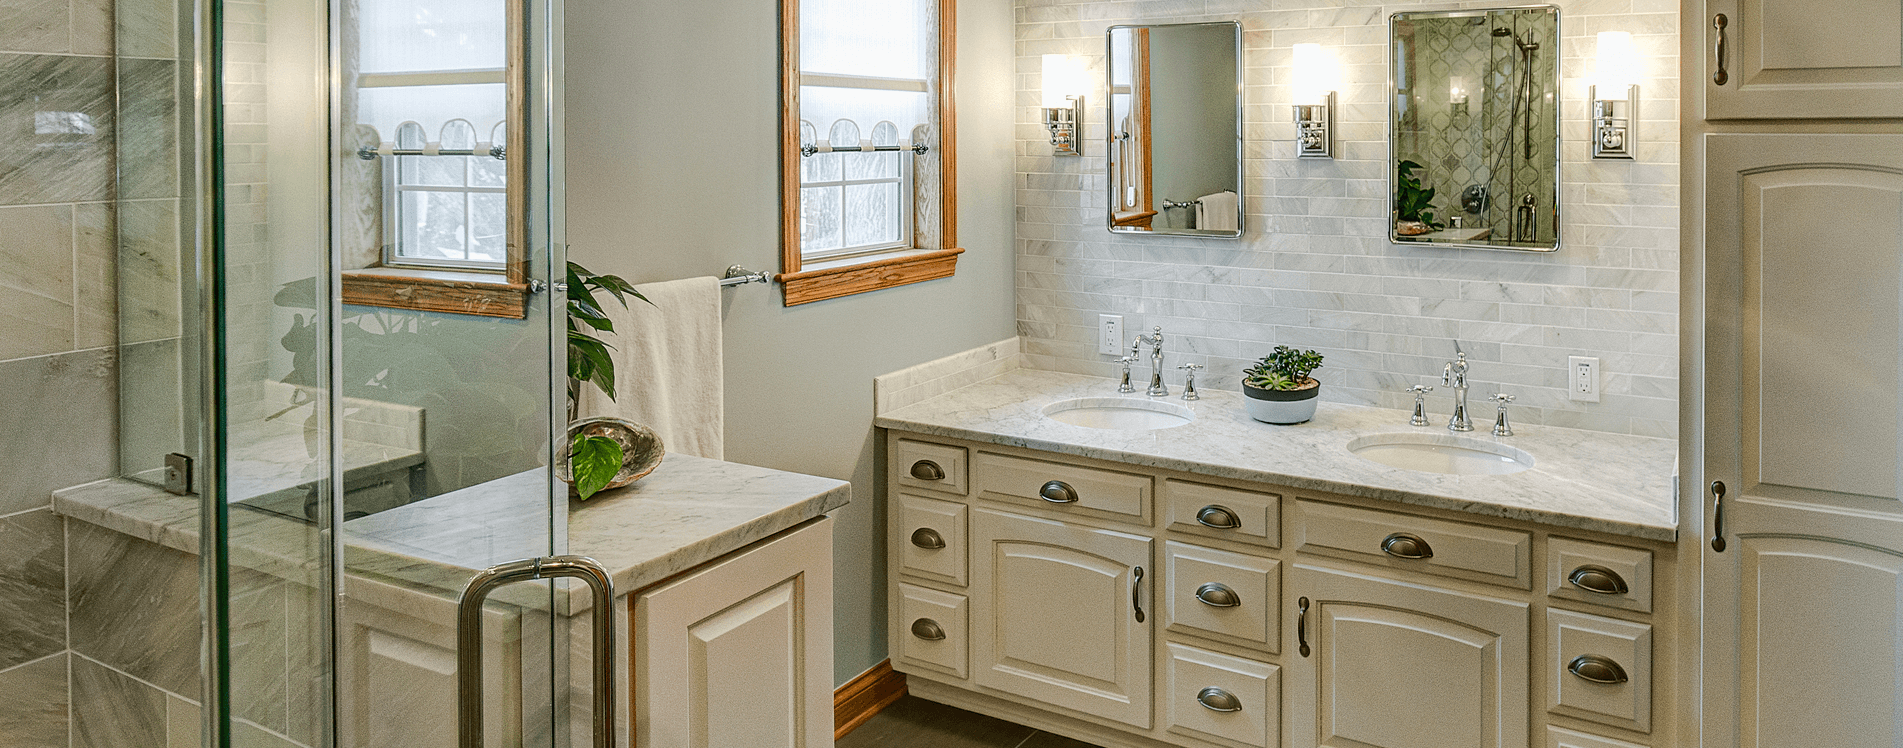 Advantages Of Custom Bathroom Cabinets And Vanities Scott Hall Remodeling